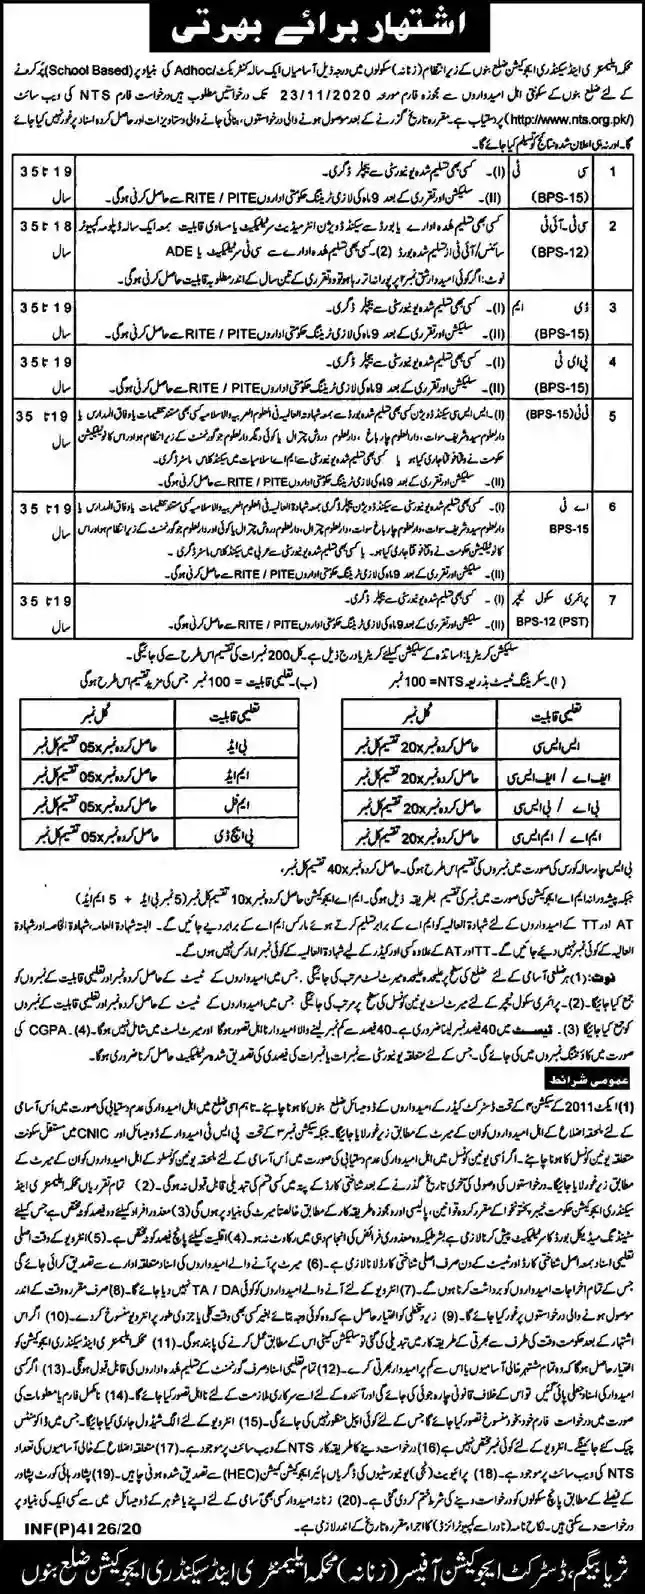 Elementary And Secondary Education Department Bannu Teaching Jobs 2020